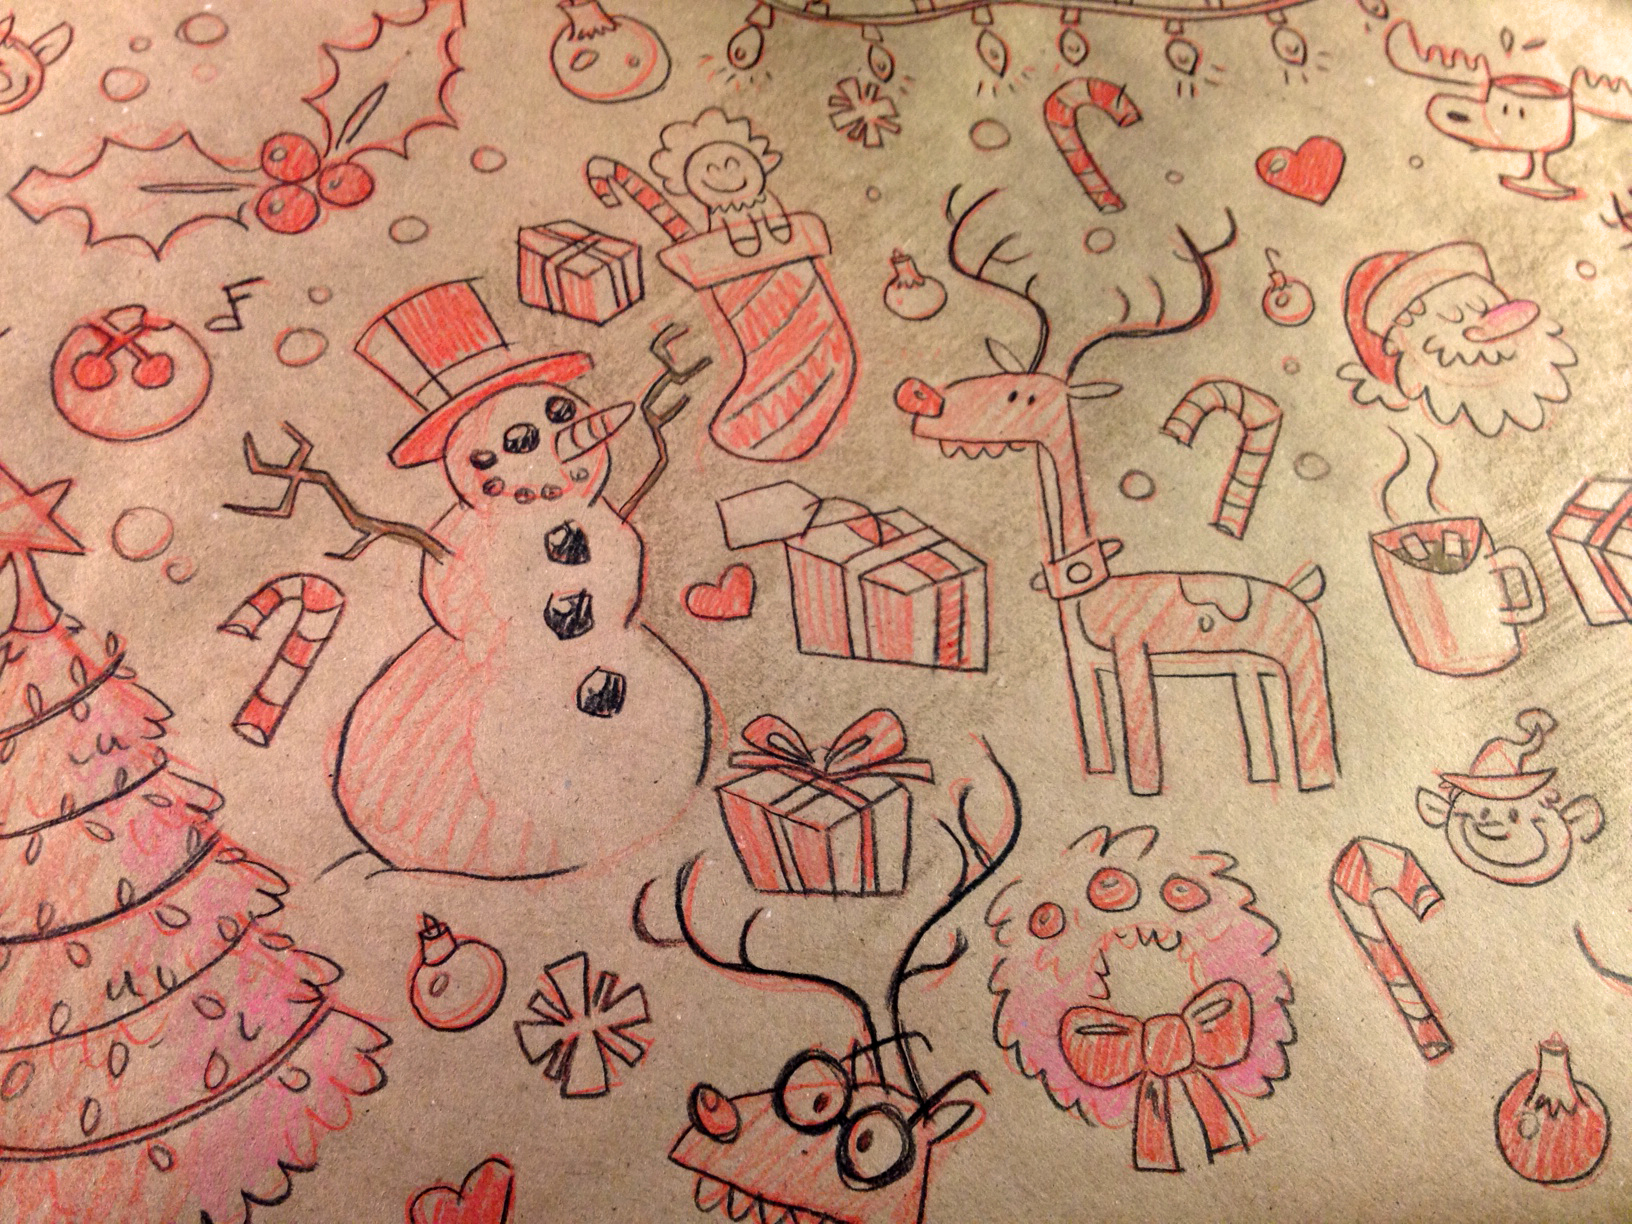 Christmas doodles by Joey Ellis